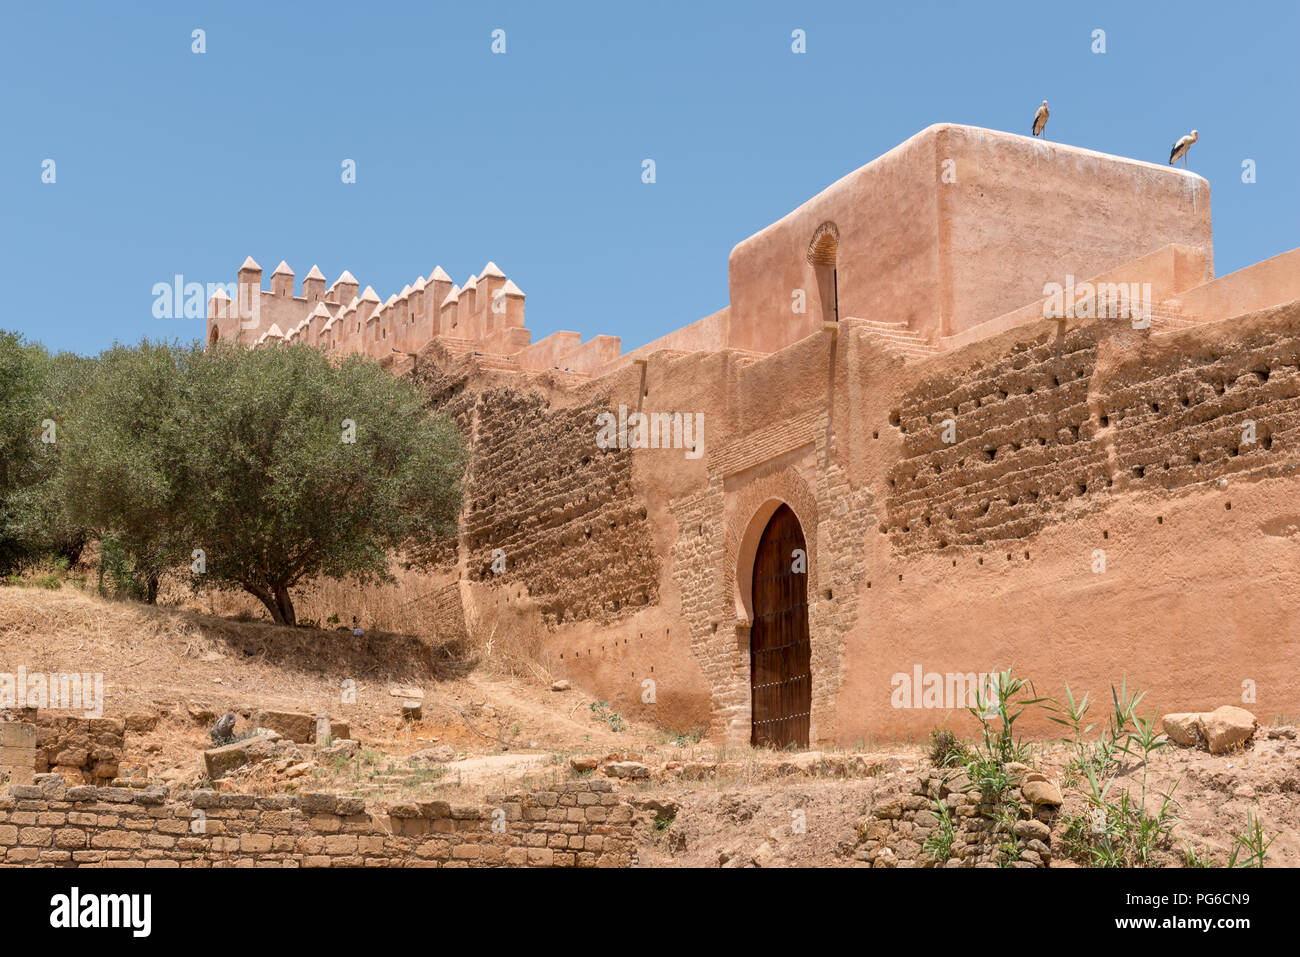 Walls of Chellah ancient necropolis and Roman settlement in Rabat, Morocco - Stock Image